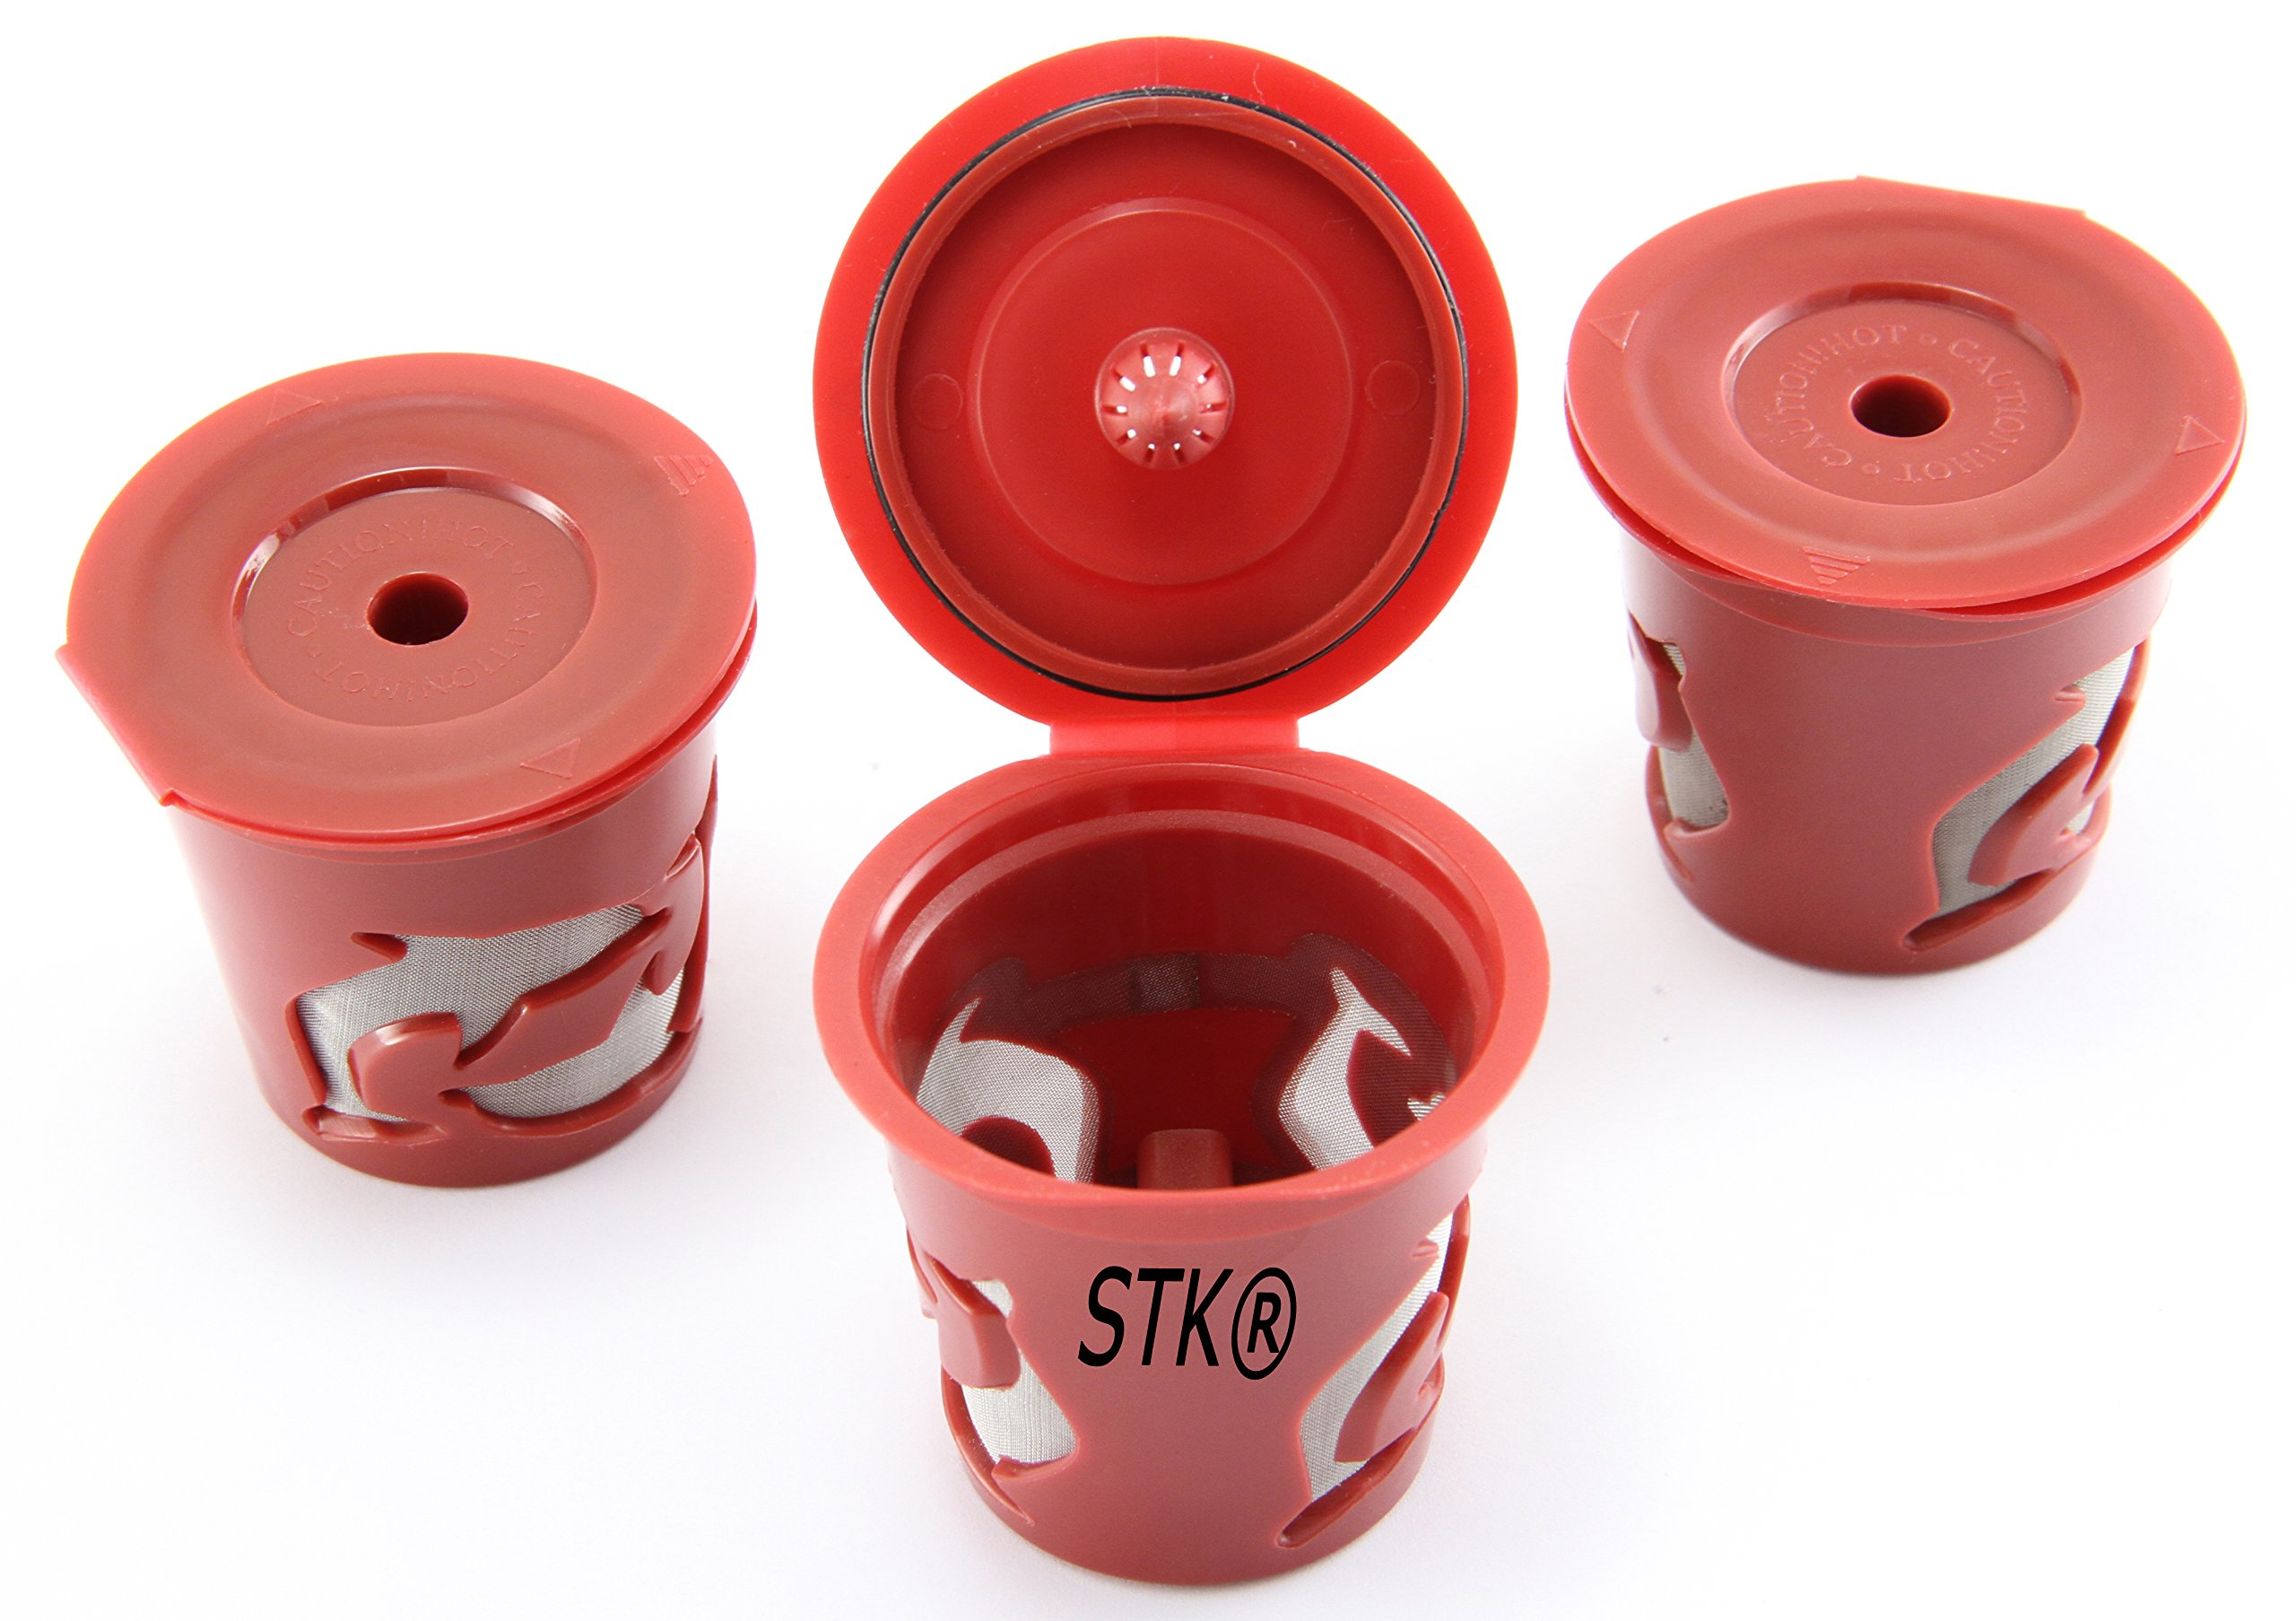 STK Keurig Reusable K Cups 3Pack for Classic and 2.0 Brewers Universal Fit for K55, K575, K15, K250, K-Elite, K155, K-Select, K475 and others